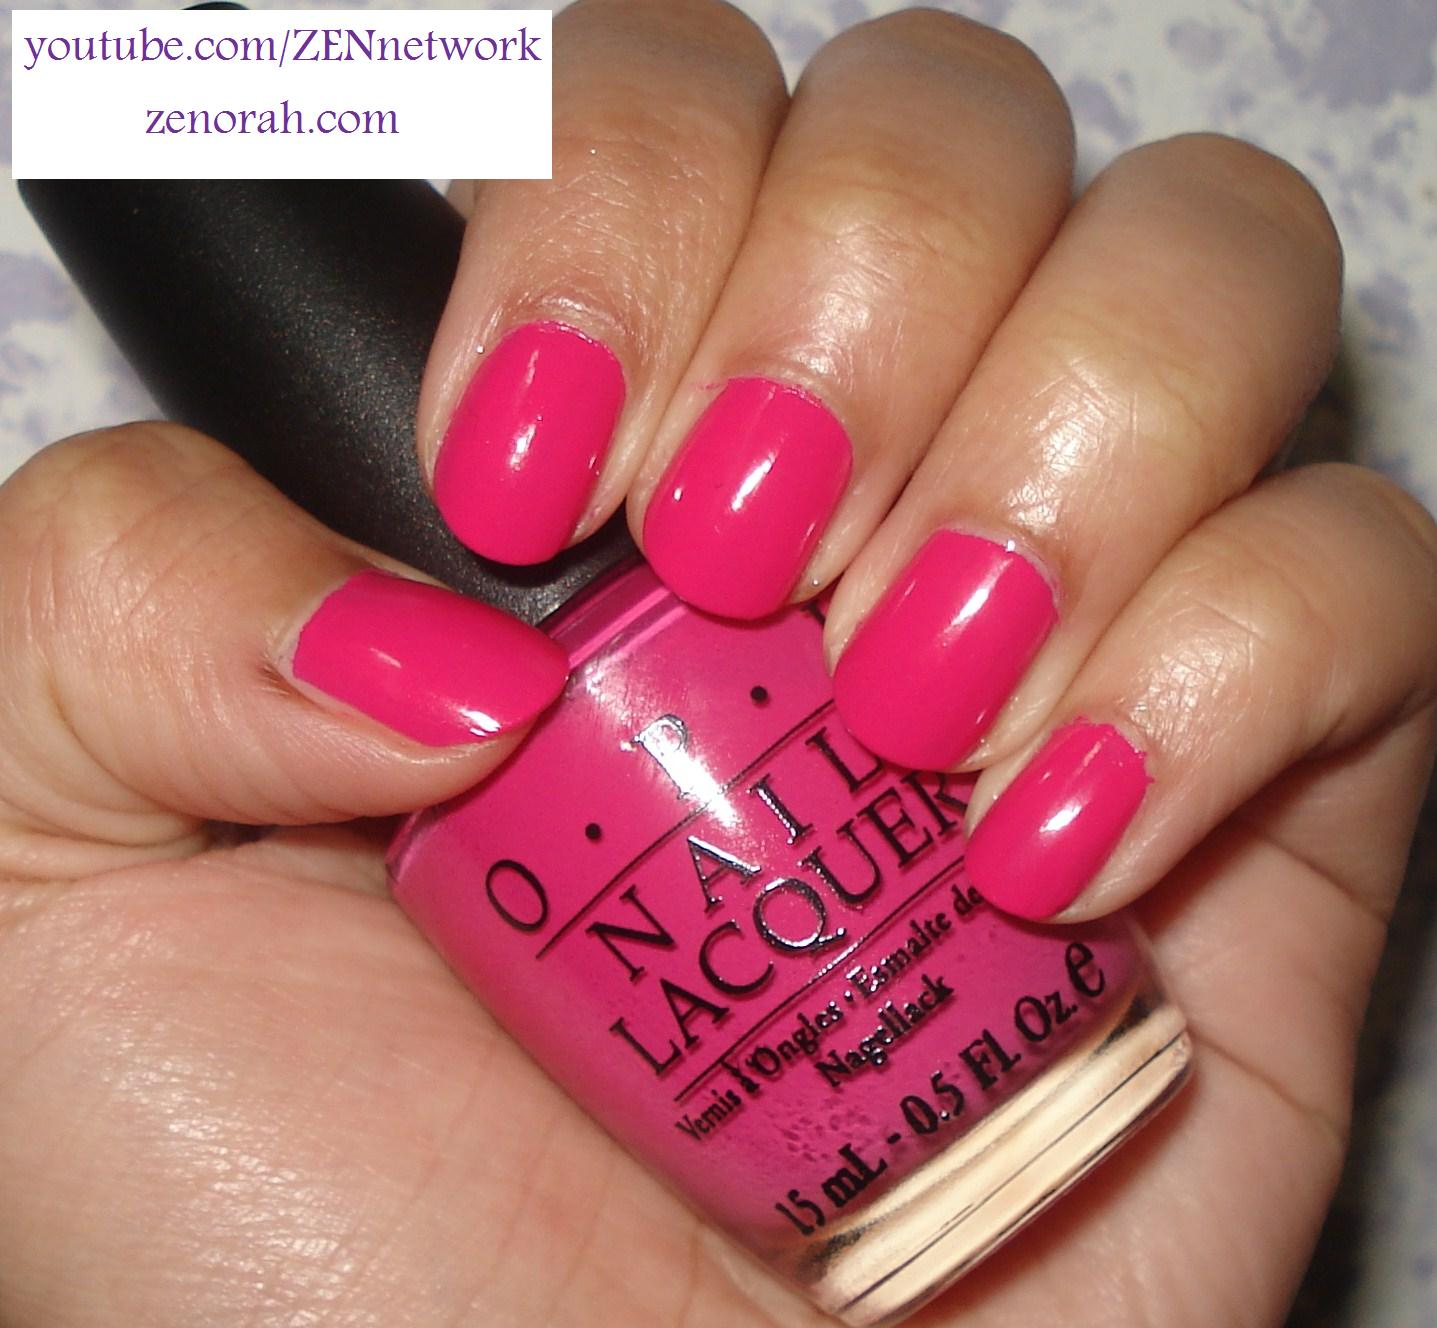 Bright Pink Nail Polish Colors: OPI Pink Flamenco